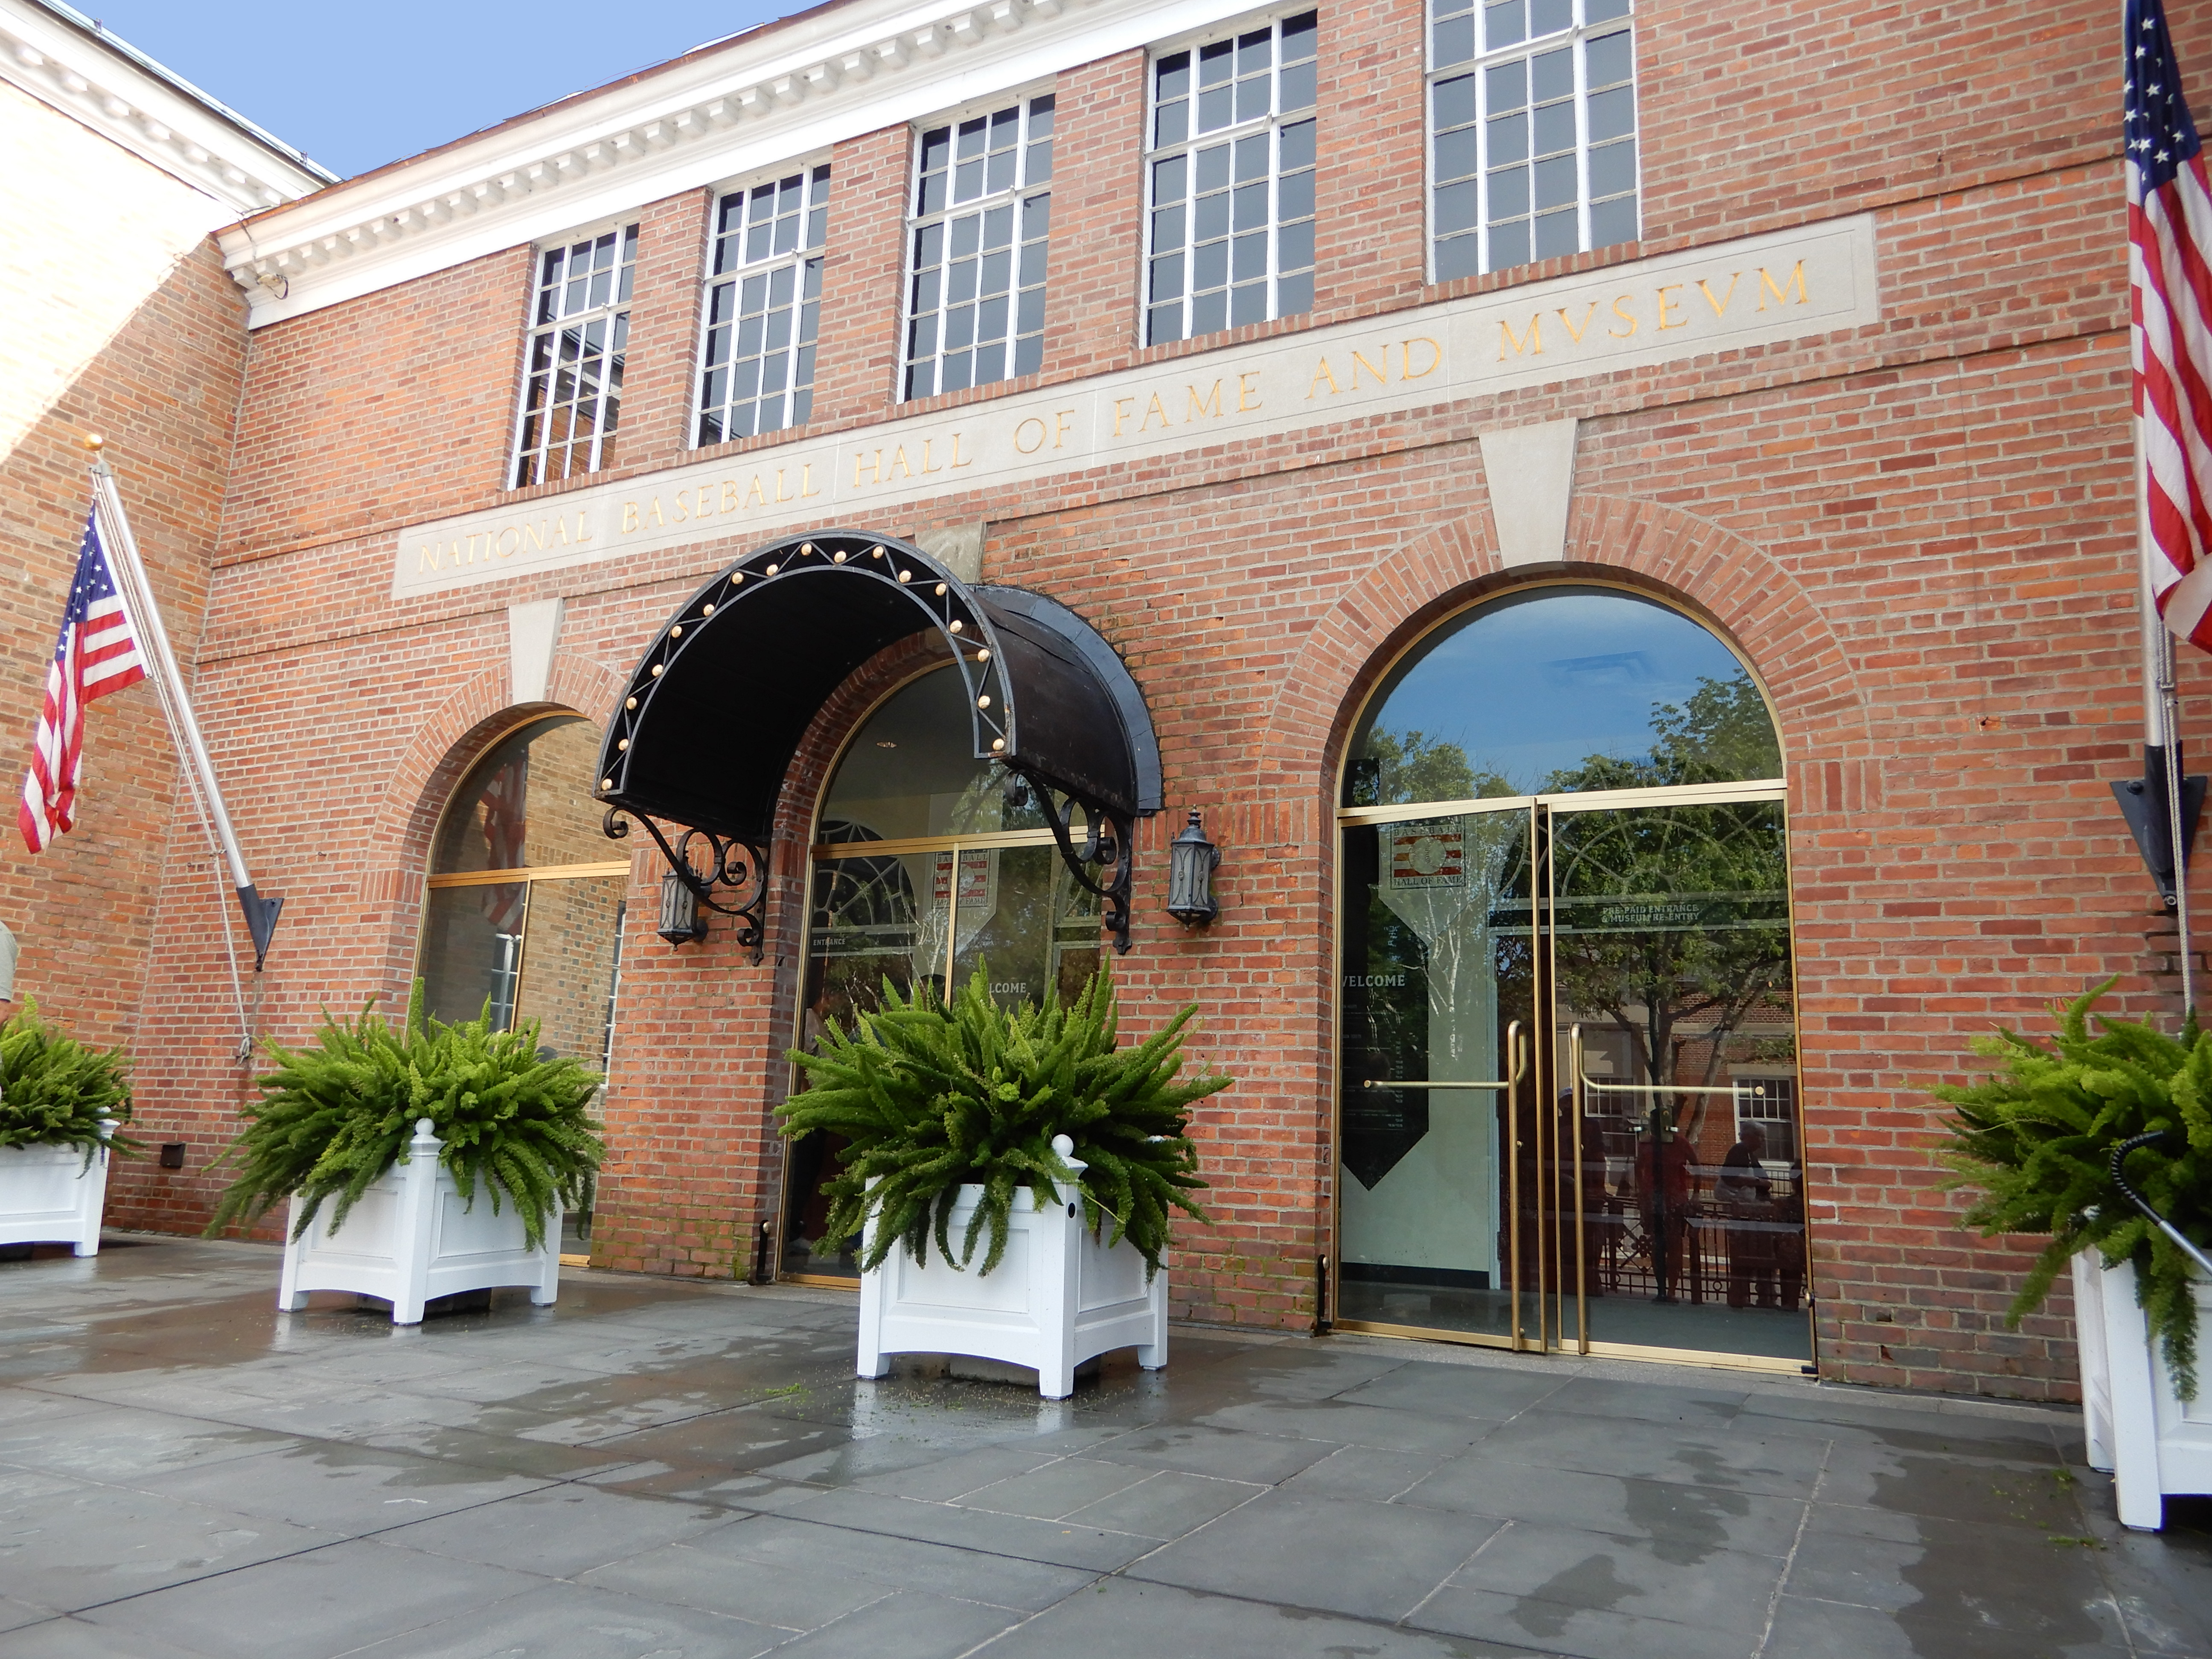 National Baseball Hall of Fame and Museum, Cooperstown, New York